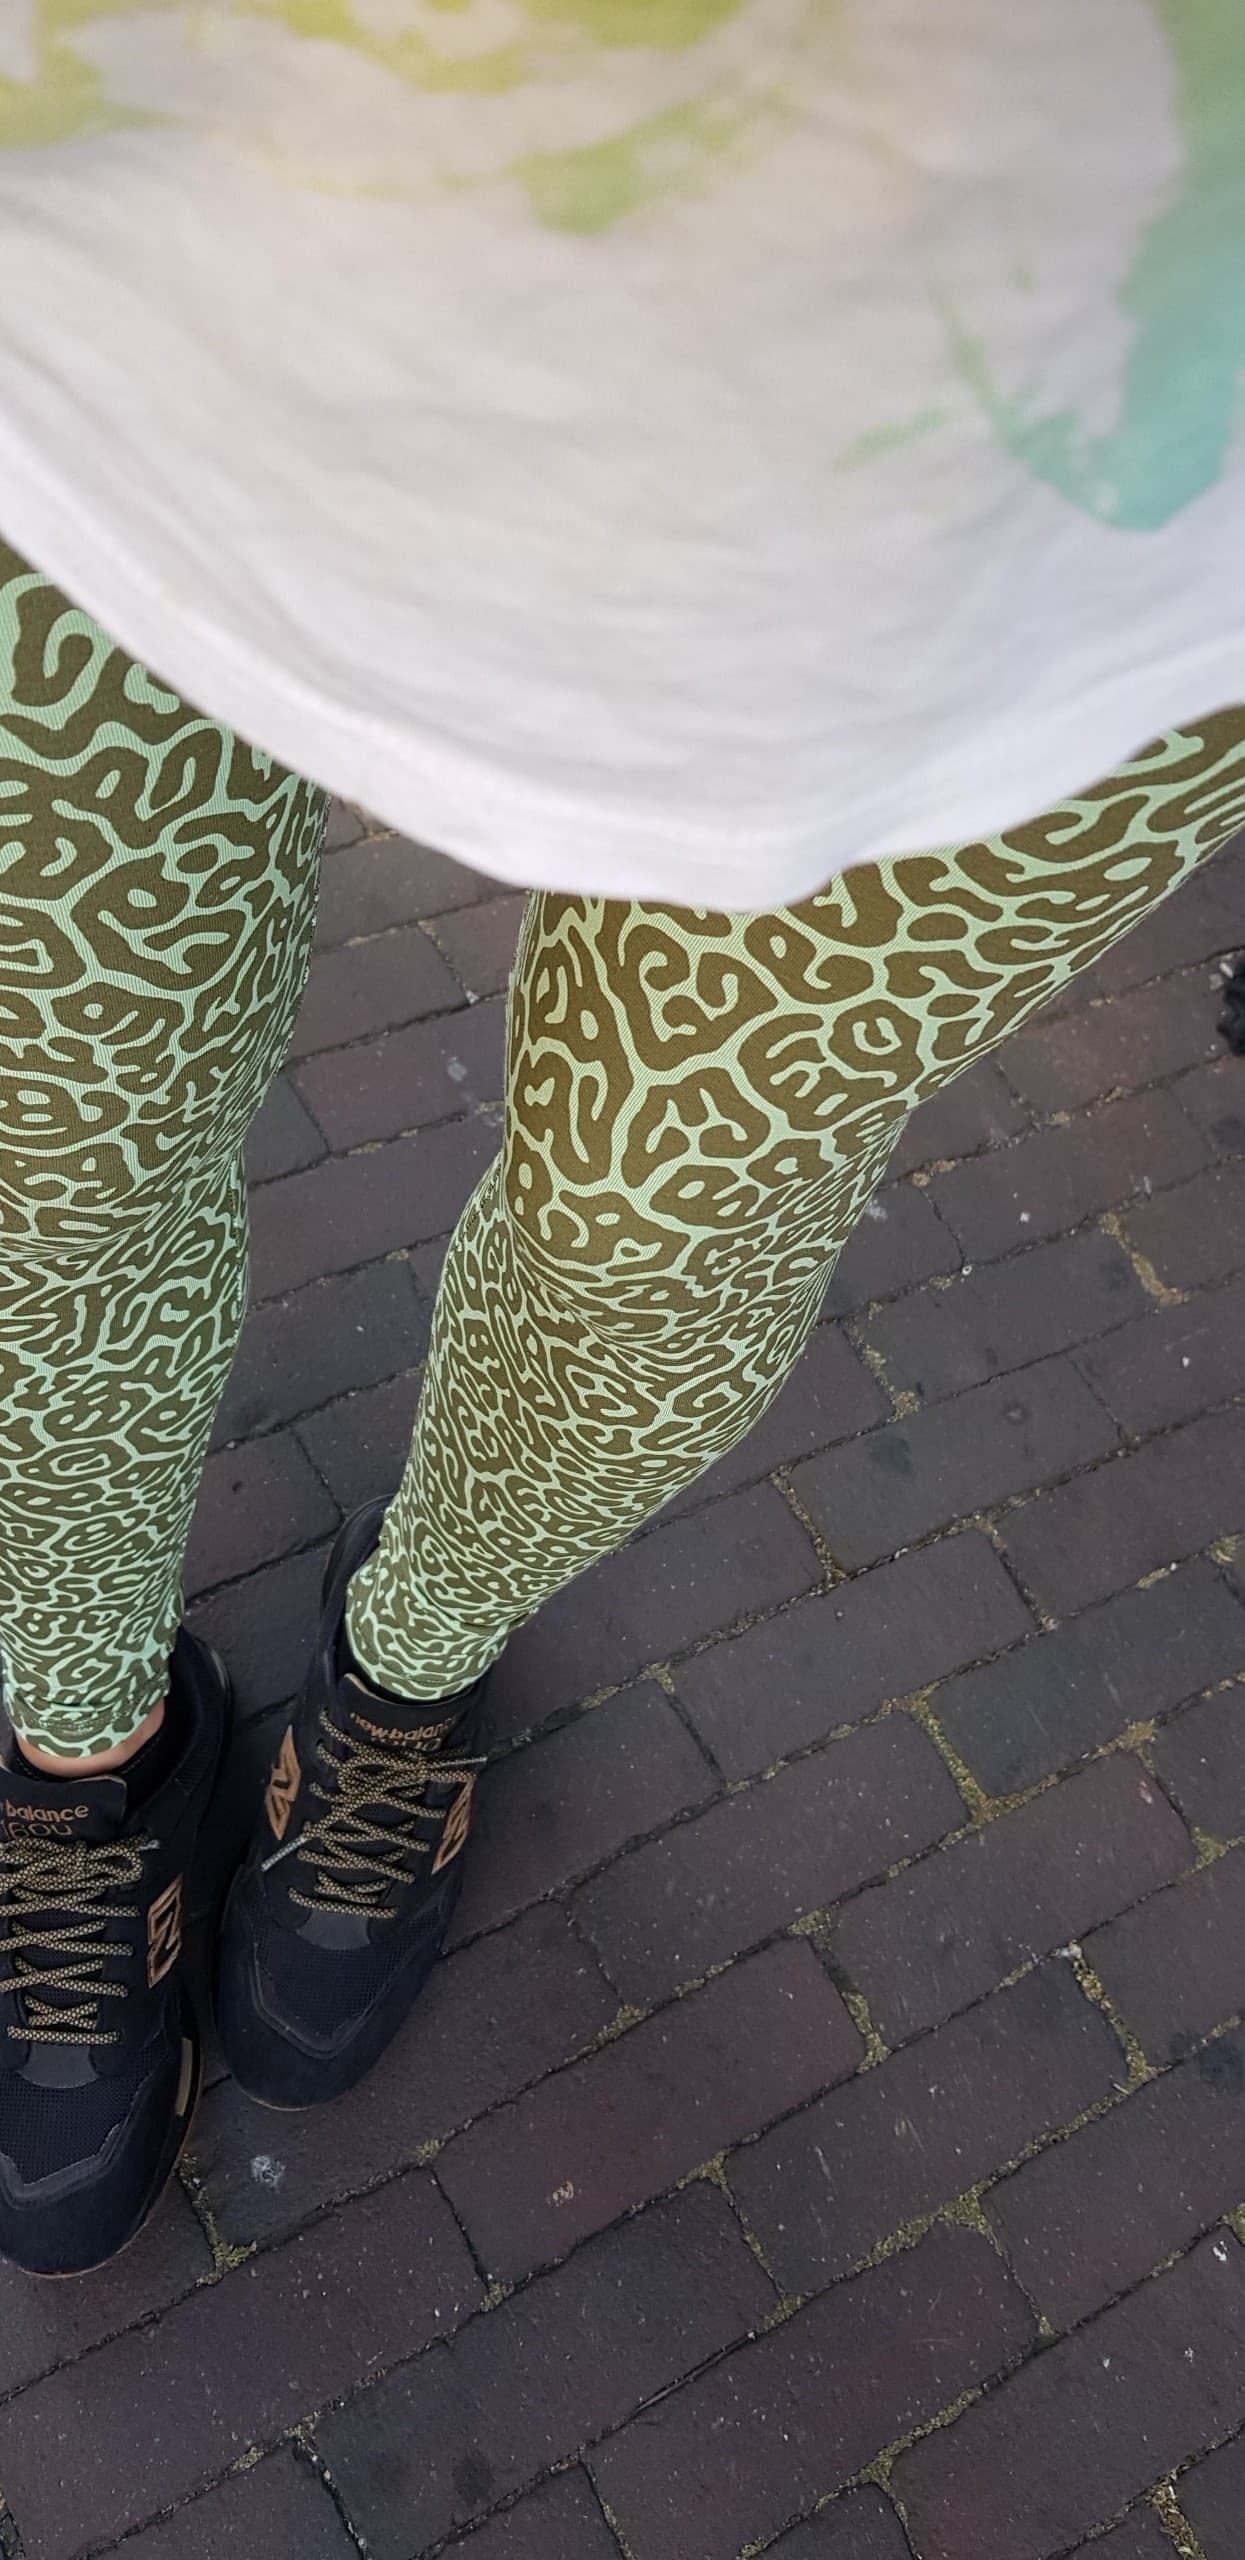 Leggings Green Pufferfish - FUNKY SIMPLICITY